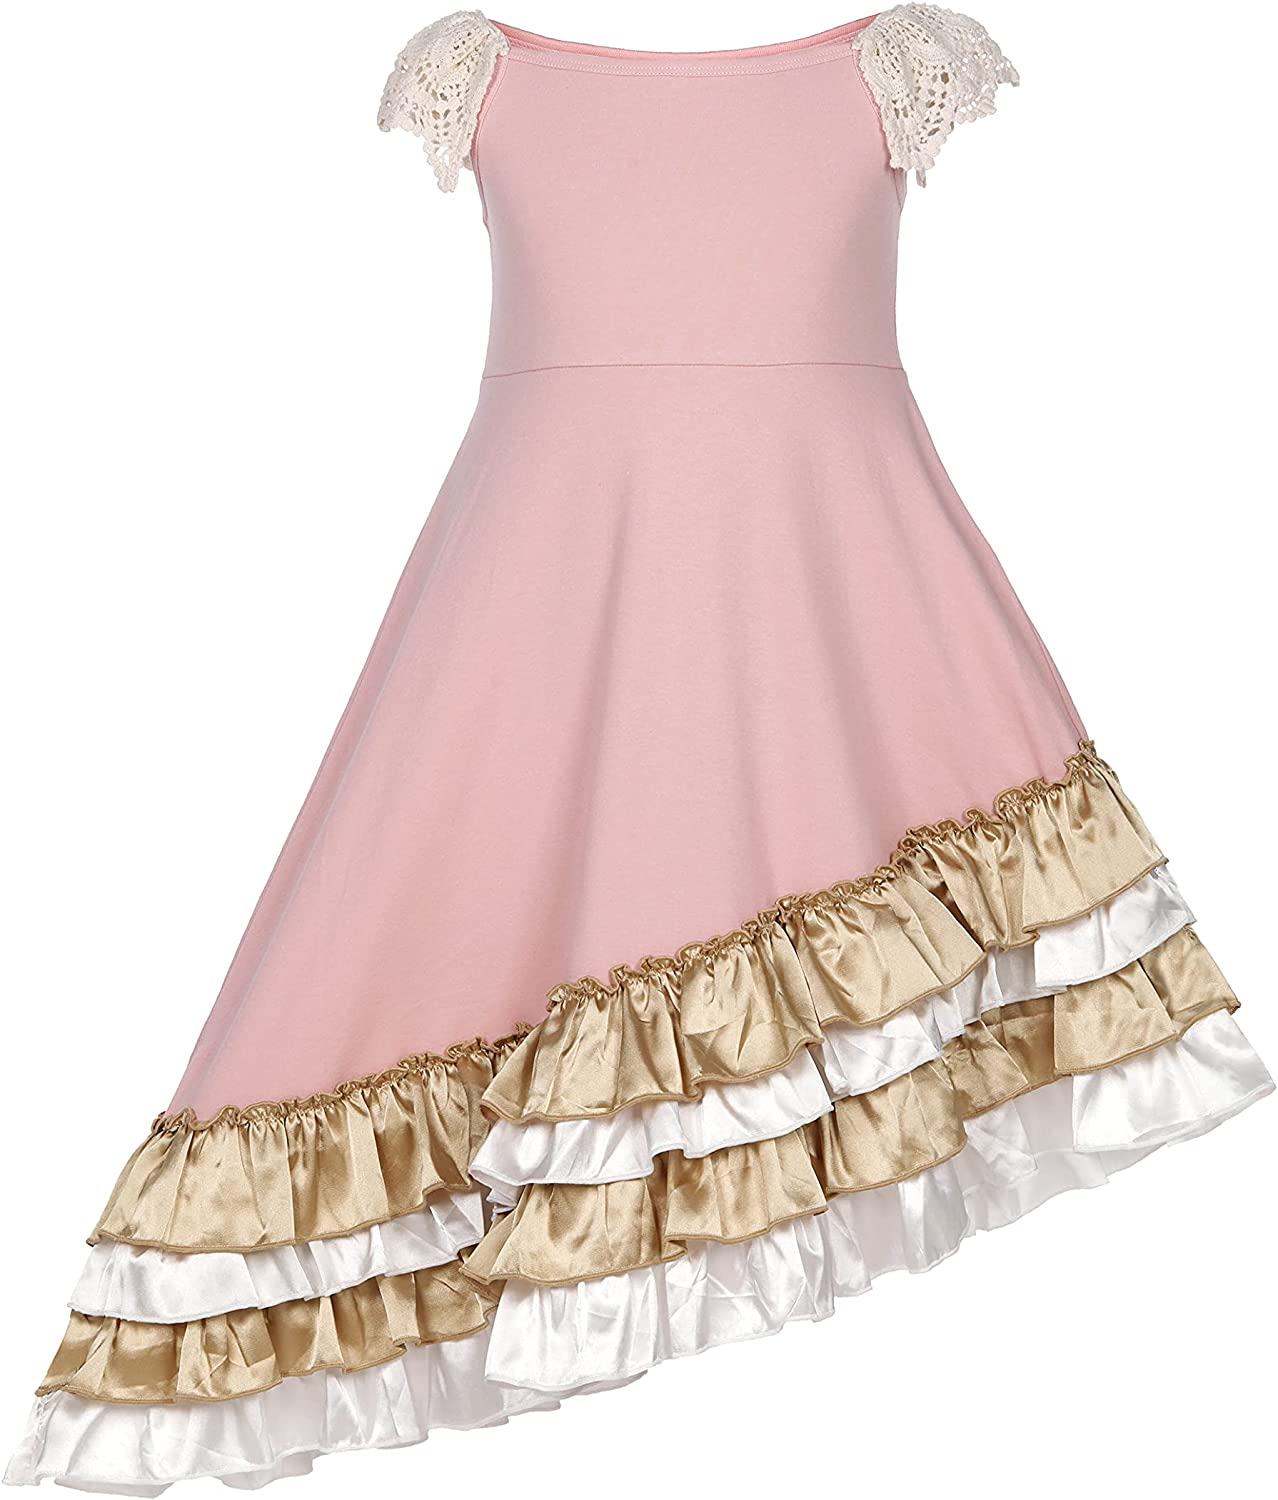 Girls Ruffles Maxi Dress Candy Color Sleeve Fly Sin OFFer Floral Print Popular brand in the world